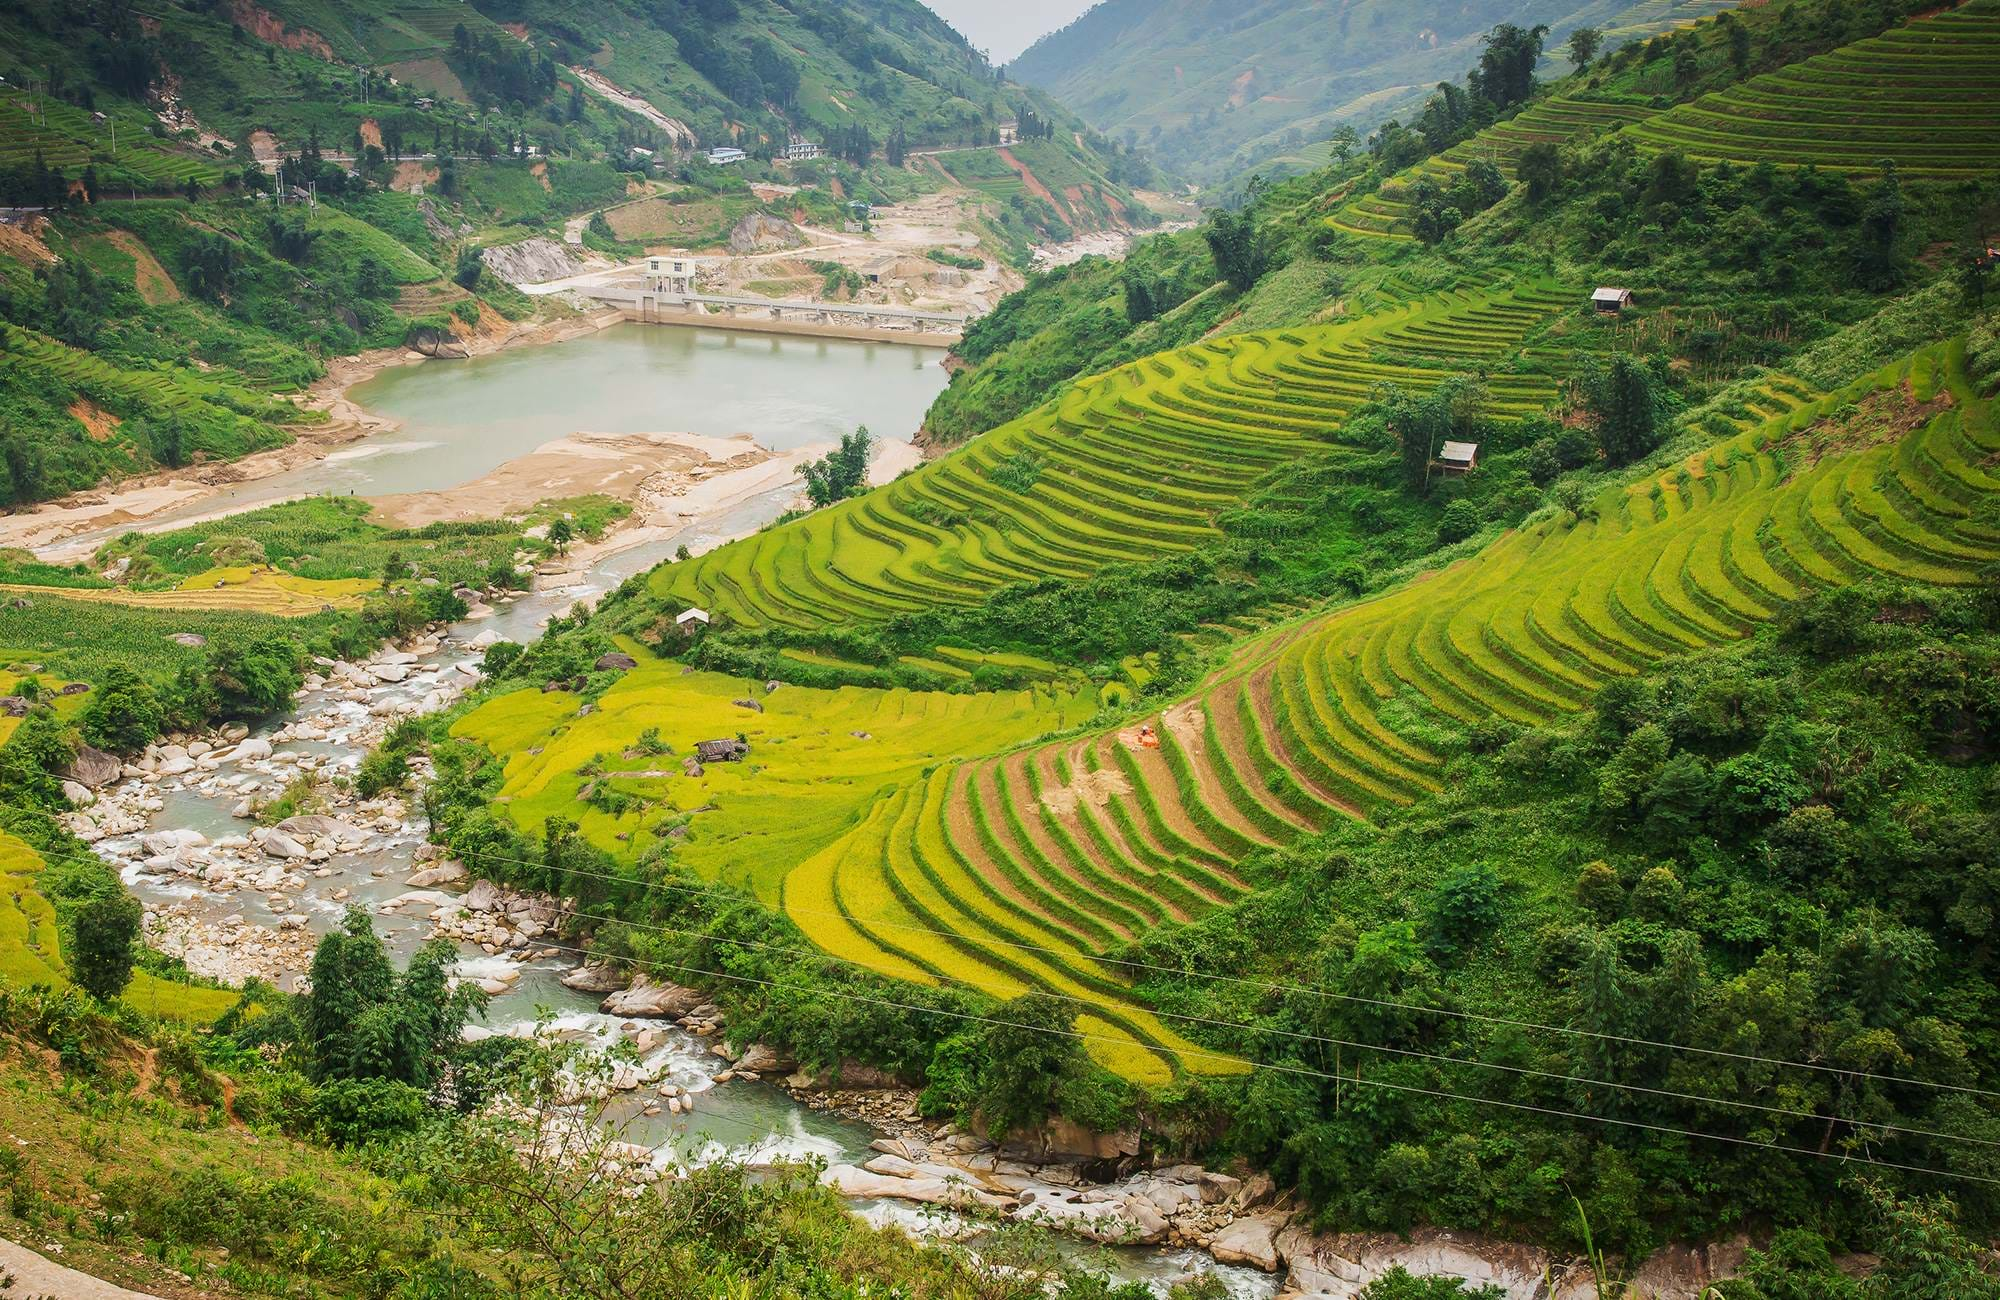 vietnam-sapa-rice-terrace-harvest-season-cover